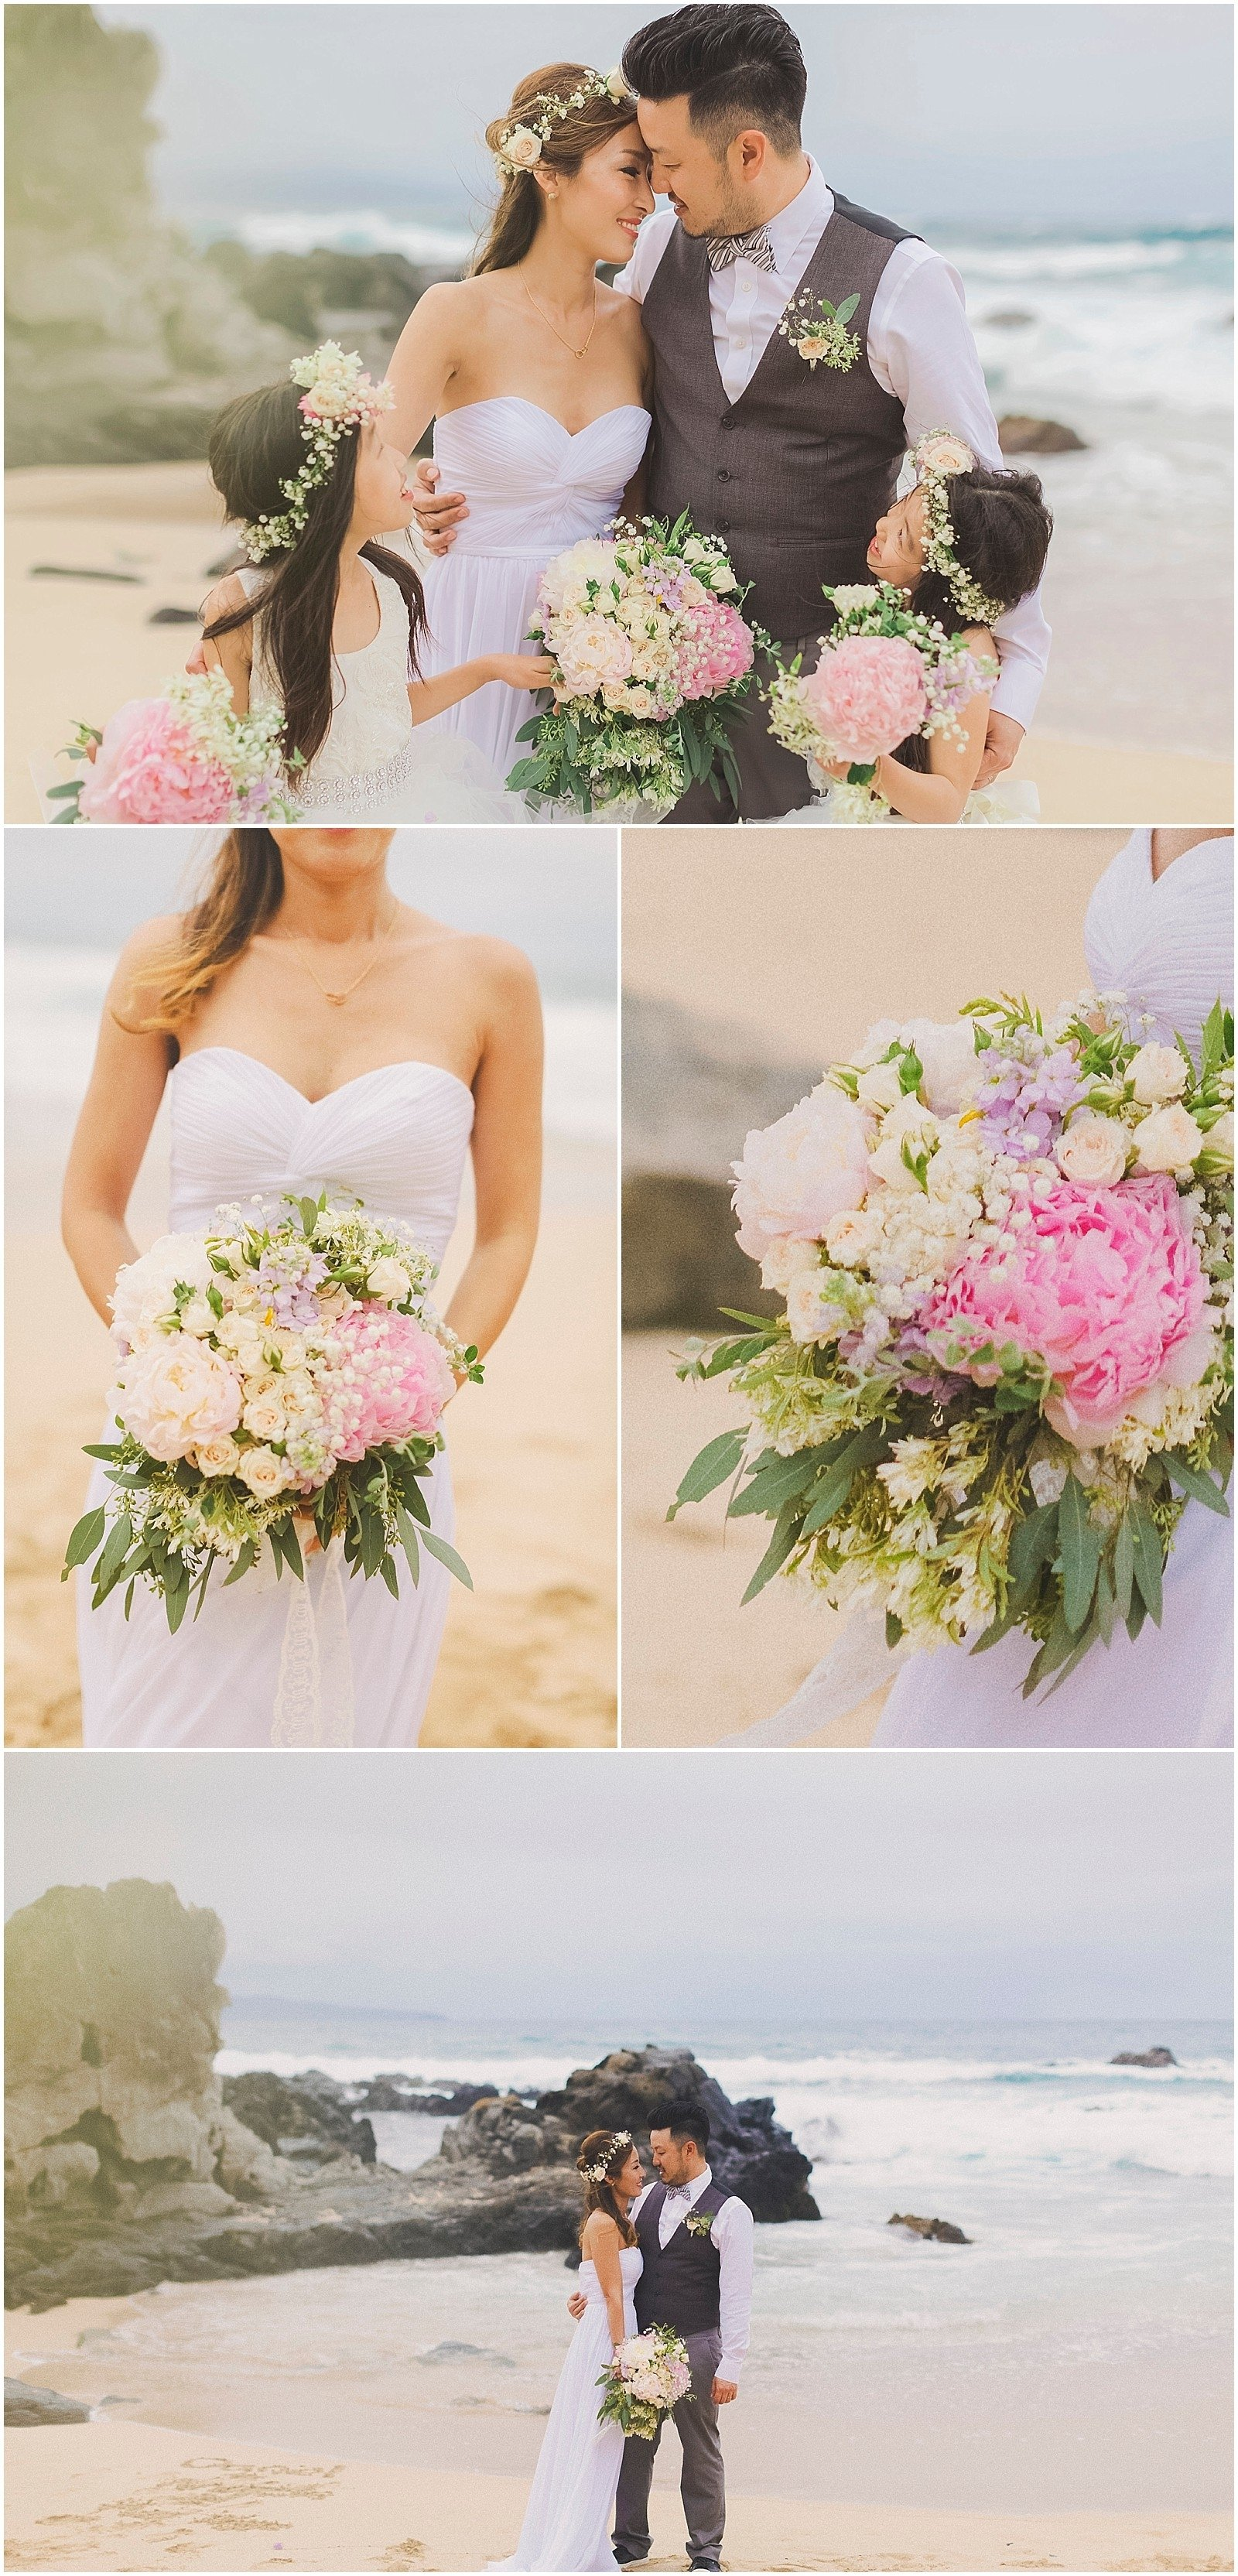 10 Nice Vow Renewal Ideas 10 Years how to plan an intimate vow renewal ceremony mommy diary 2020